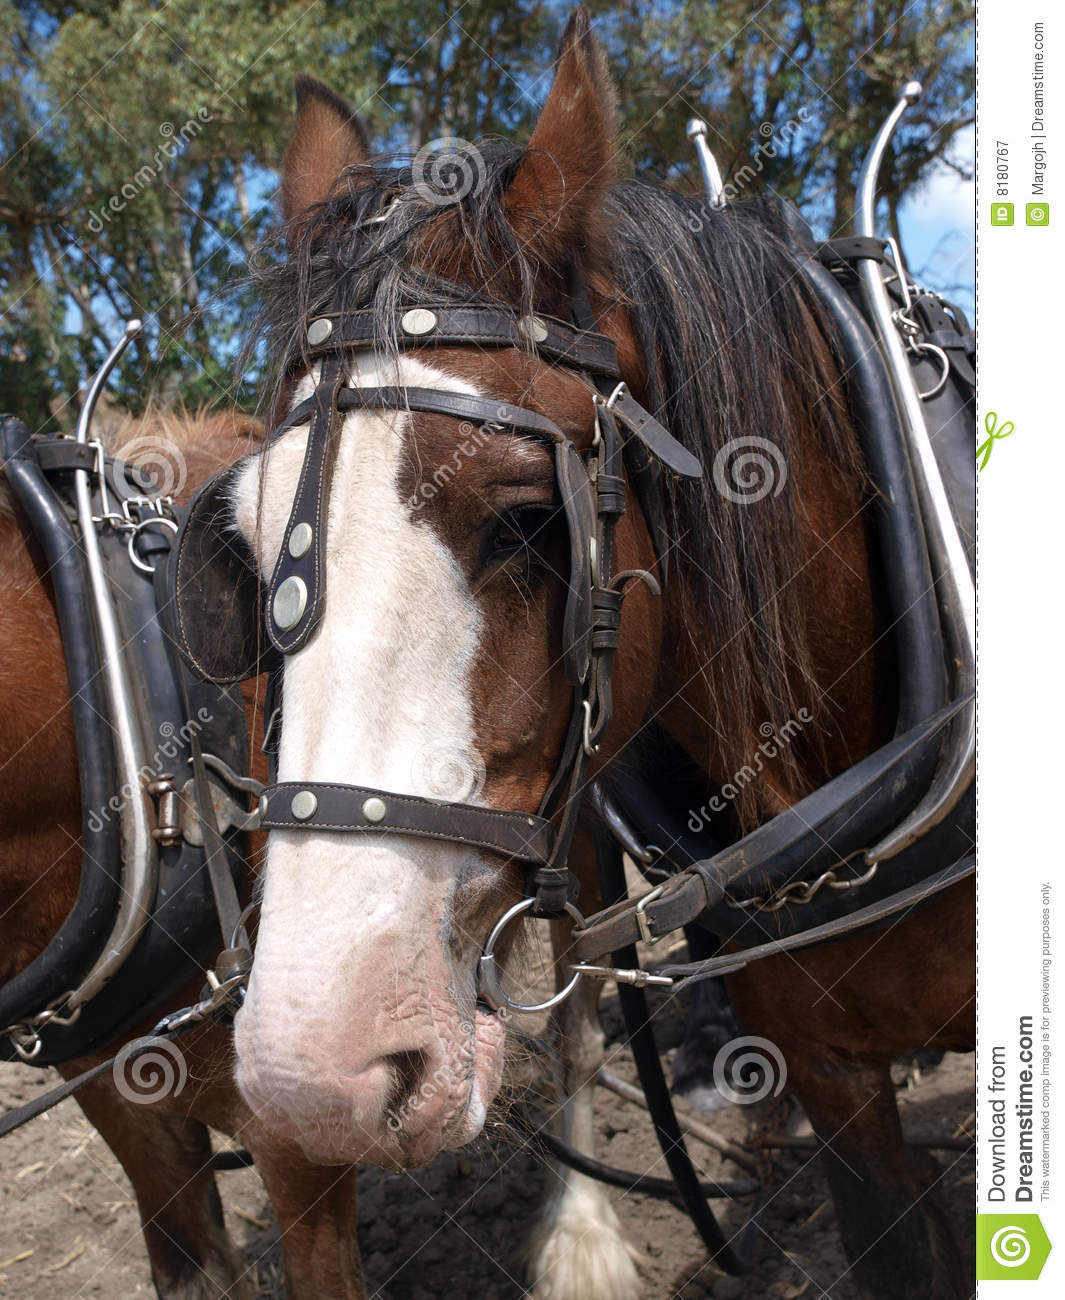 Snow Plow Prices >> Clydesdale In Harness Royalty Free Stock Photography - Image: 8180767